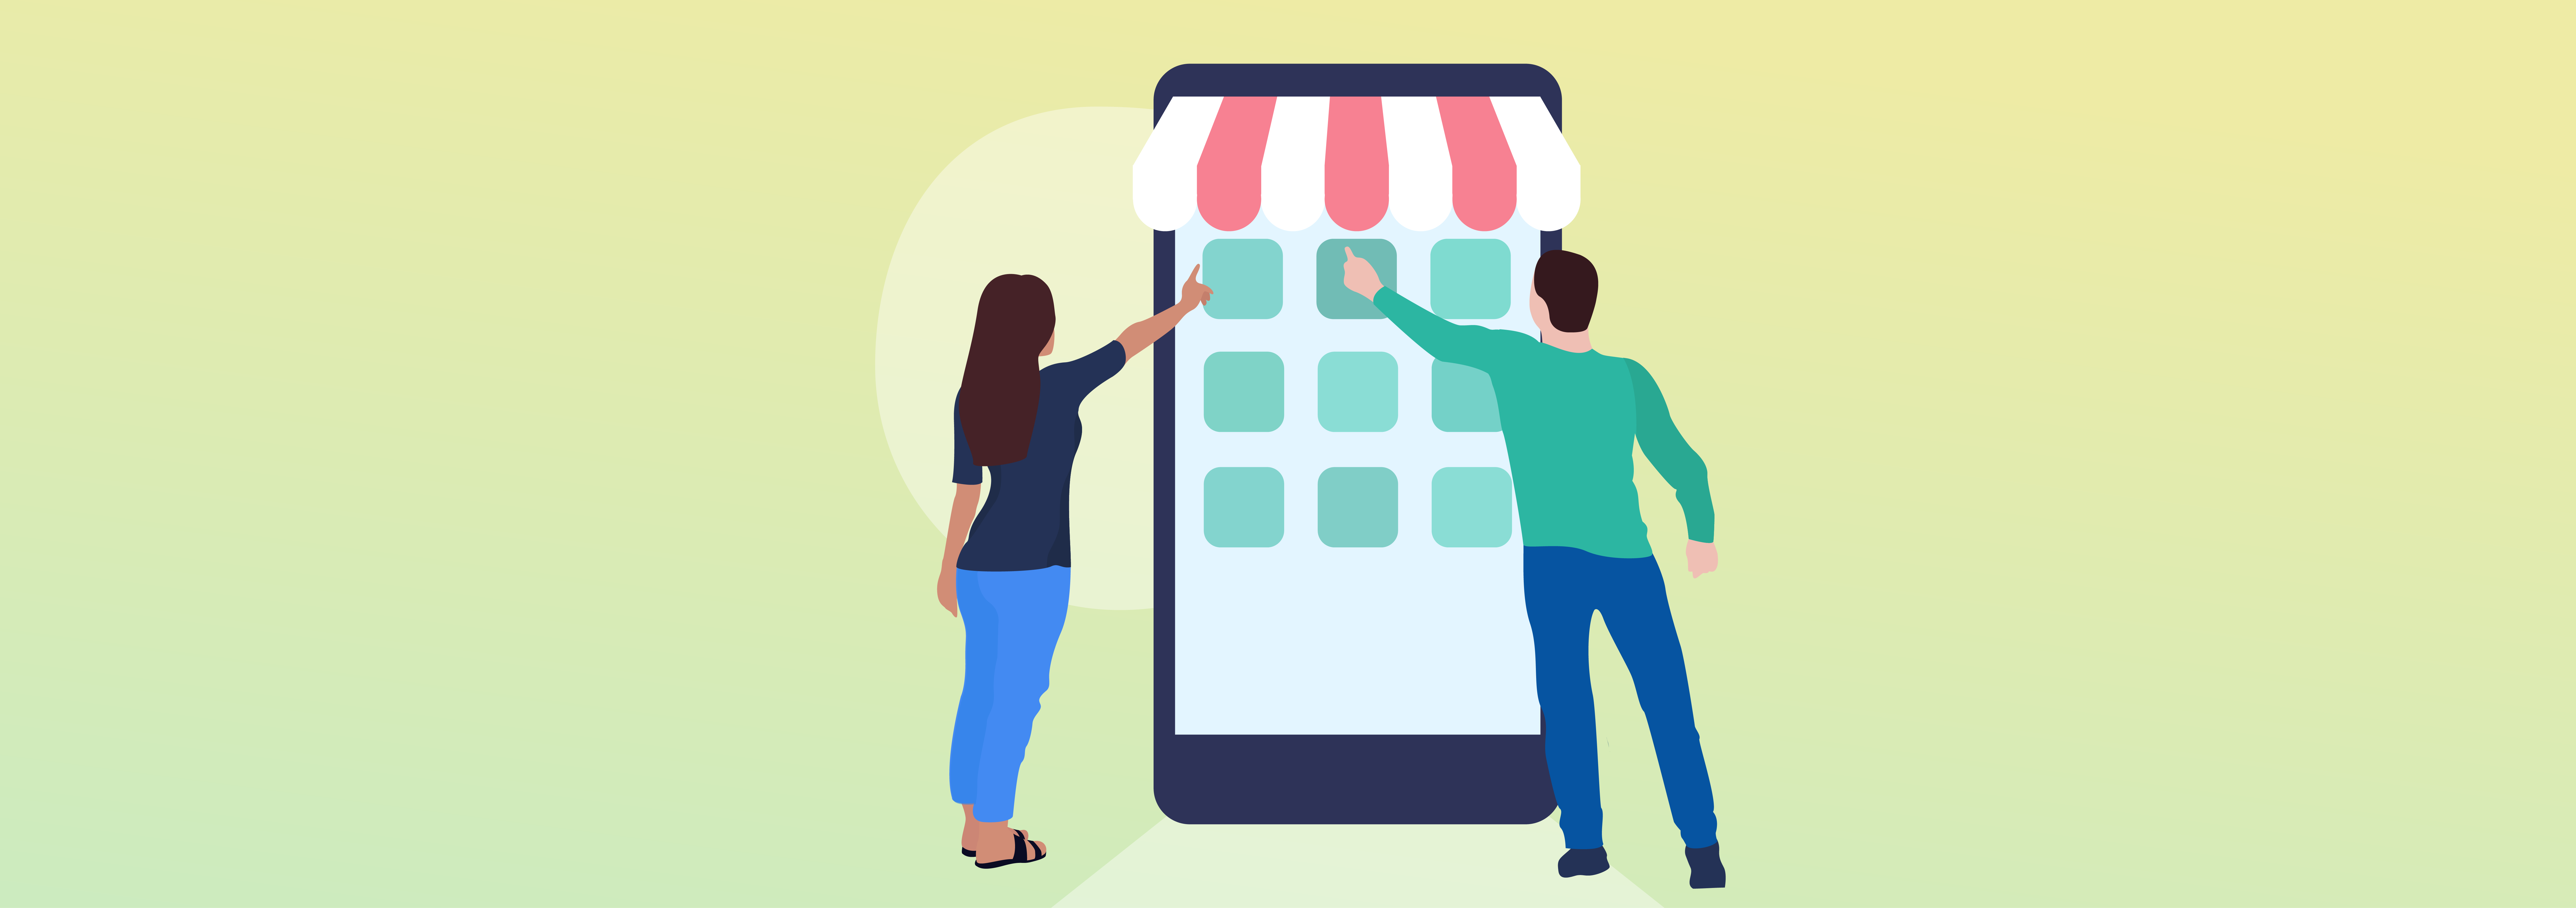 App store optimisation; 5 ways to guarantee success in the app stores